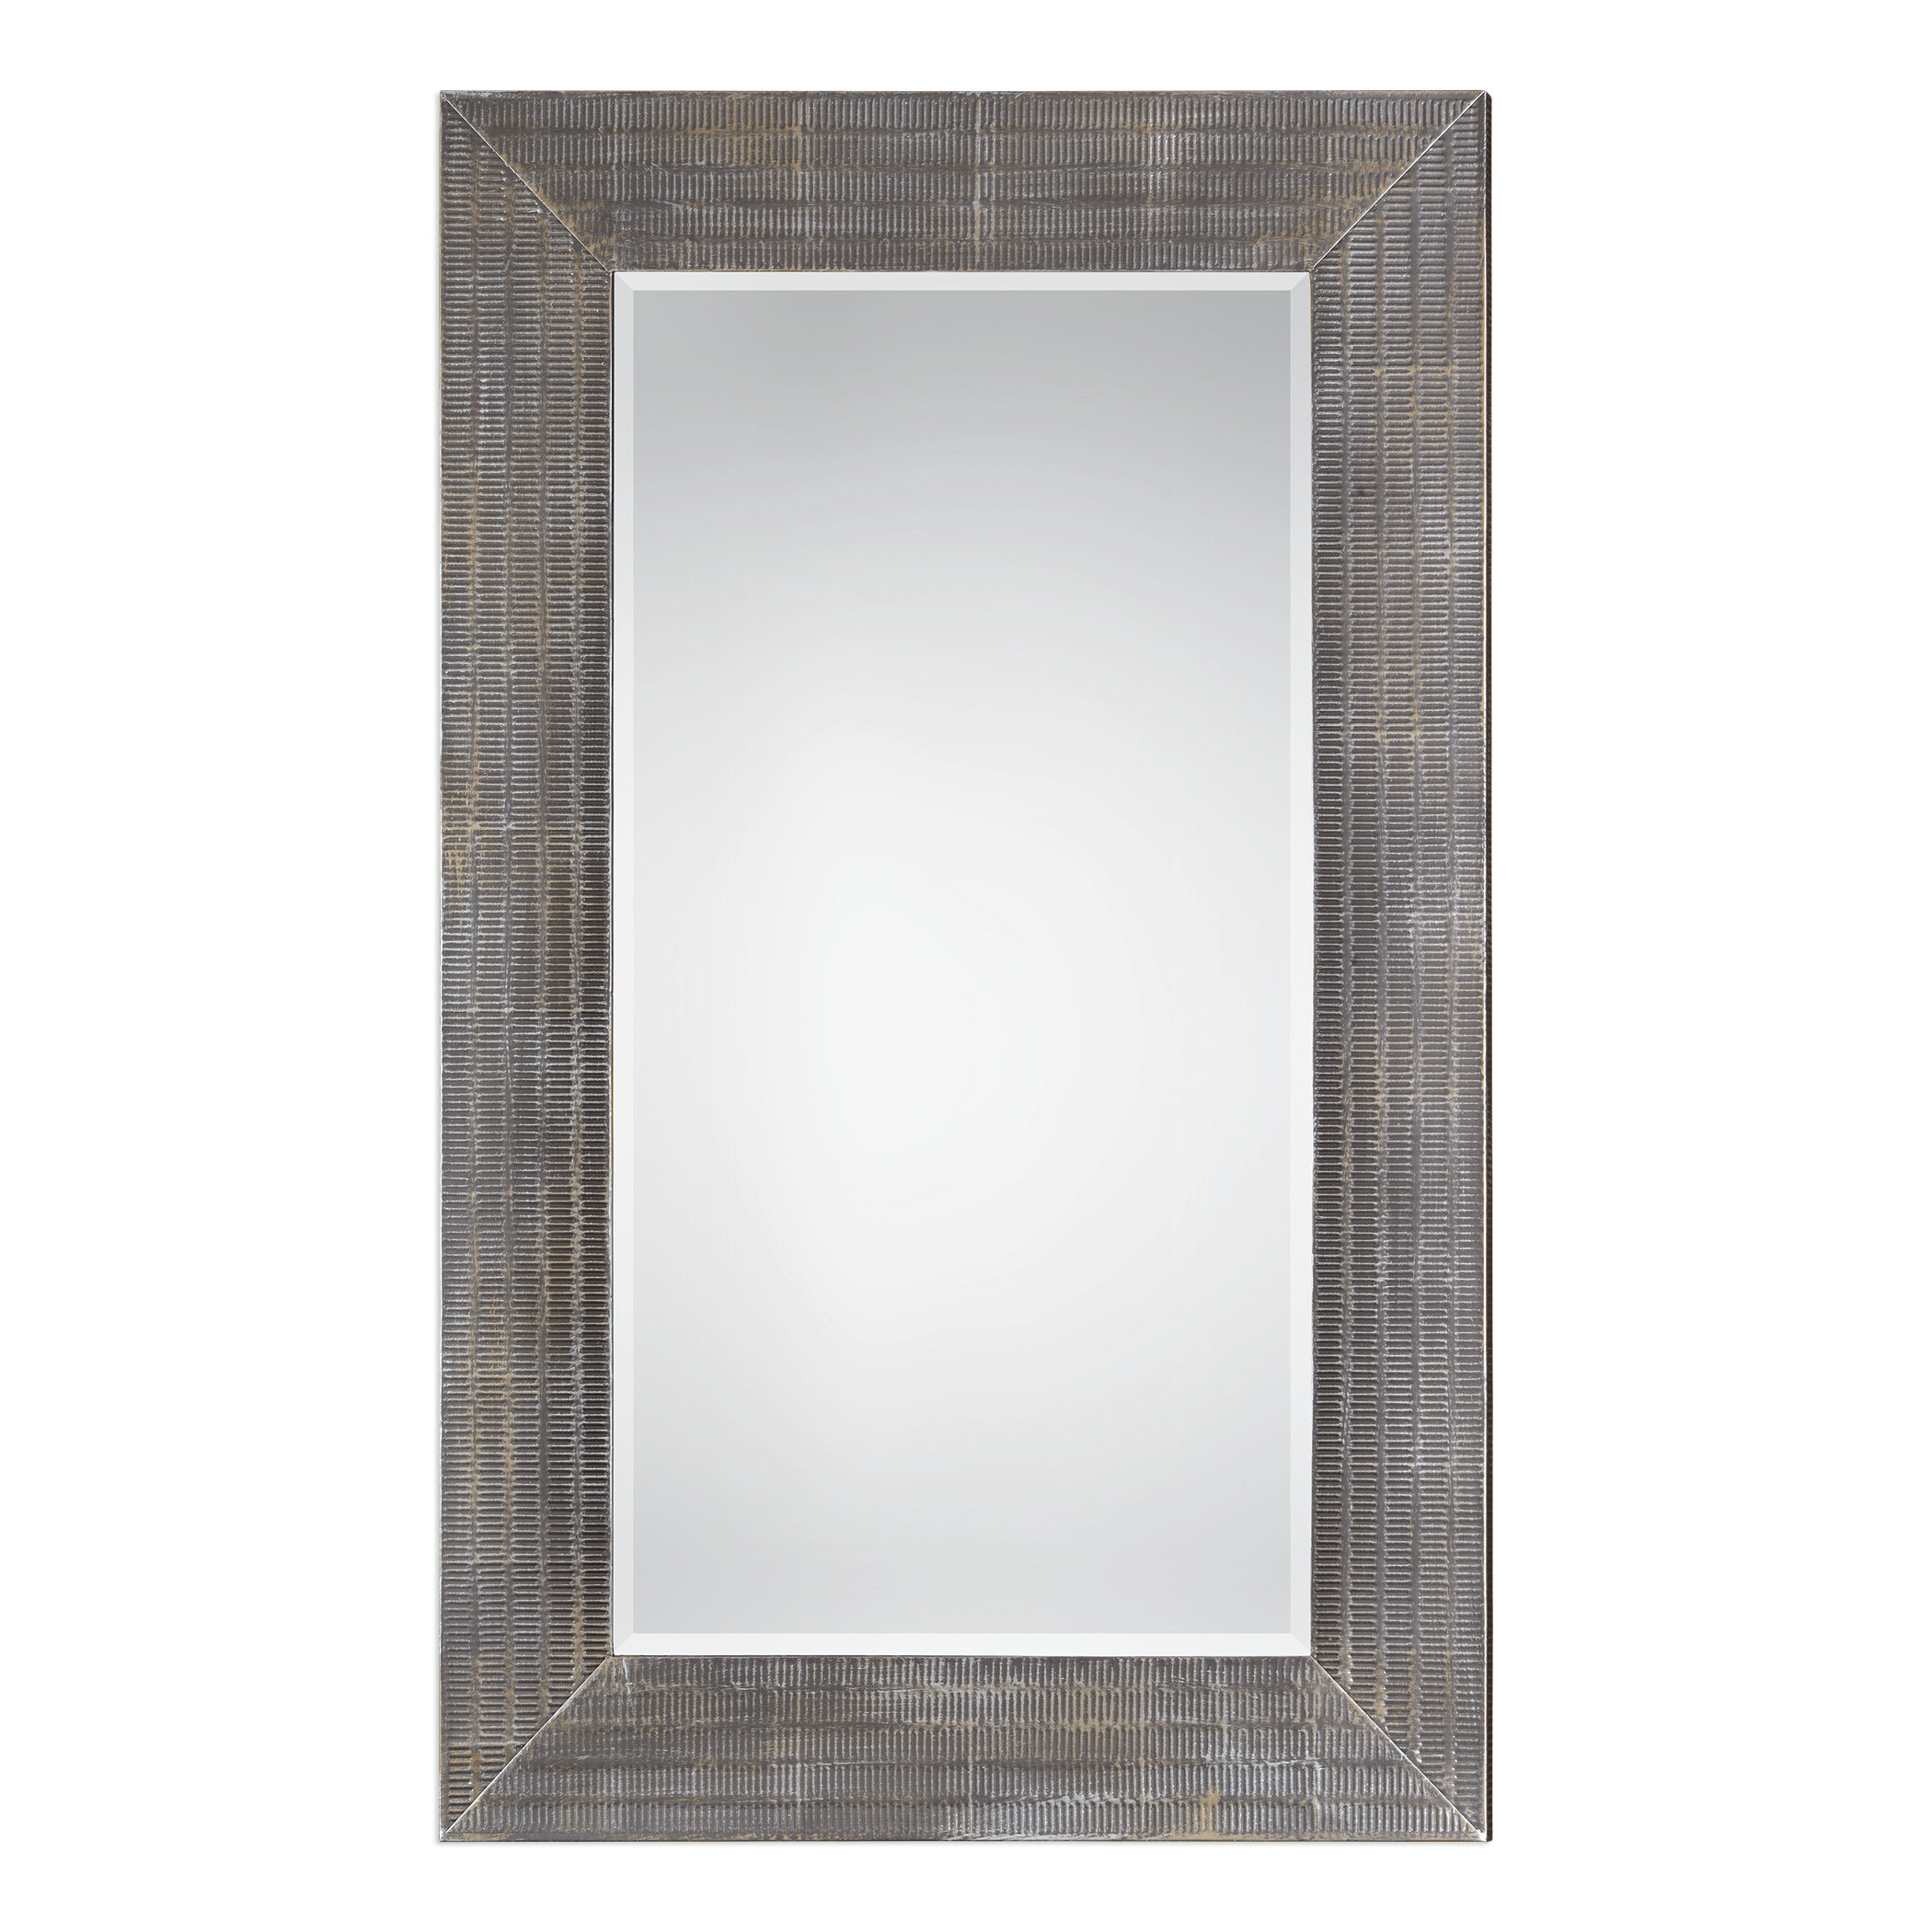 Modern & Contemporary Beveled Accent Mirror Inside Modern & Contemporary Beveled Accent Mirrors (View 23 of 30)